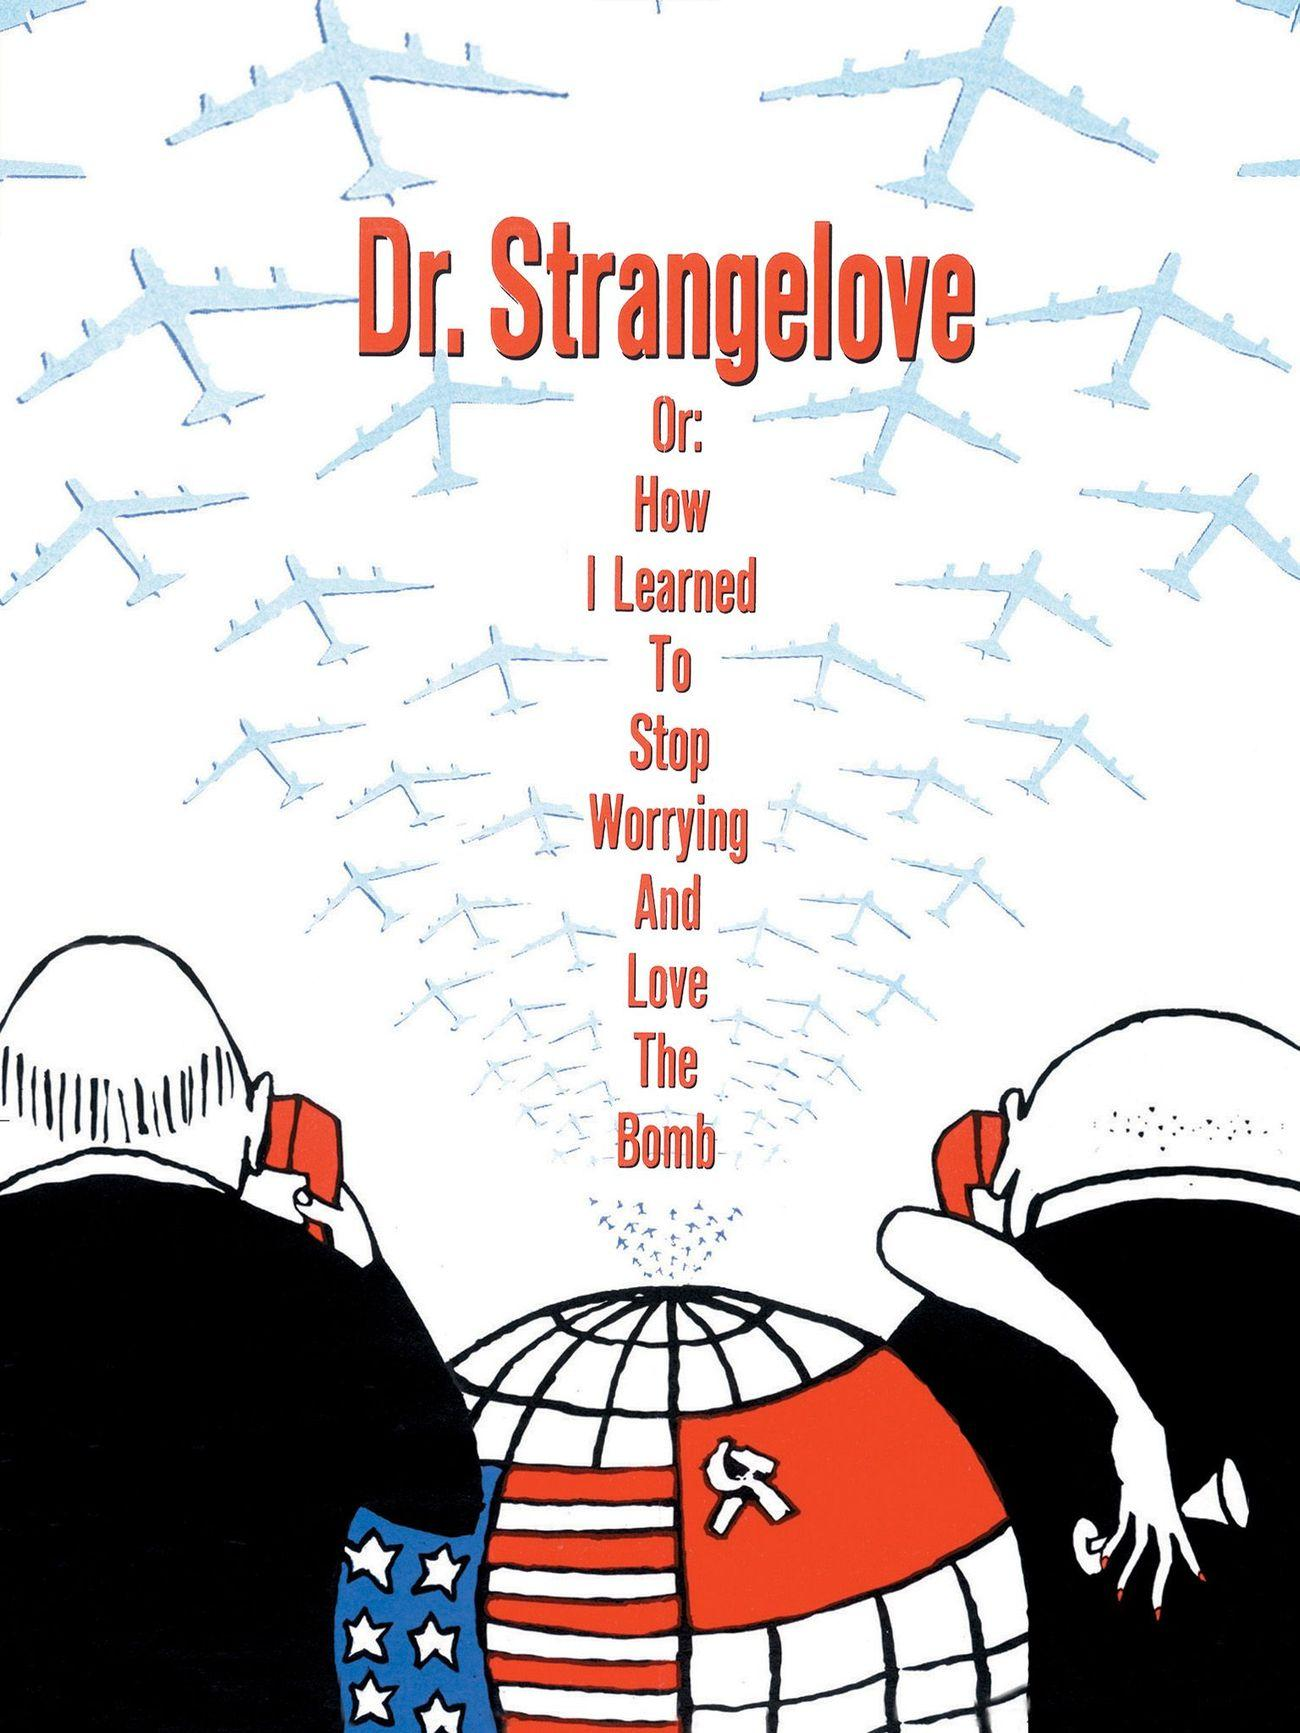 Dr.%20Strangelove%20or%20How%20I%20Learned%20to%20Stop%20Worrying%20and%20Love%20the%20Bomb%201964.1 1 دانلود فیلم Dr. Strangelove 1964 : رتبه ۵۶ در سایت IMDB